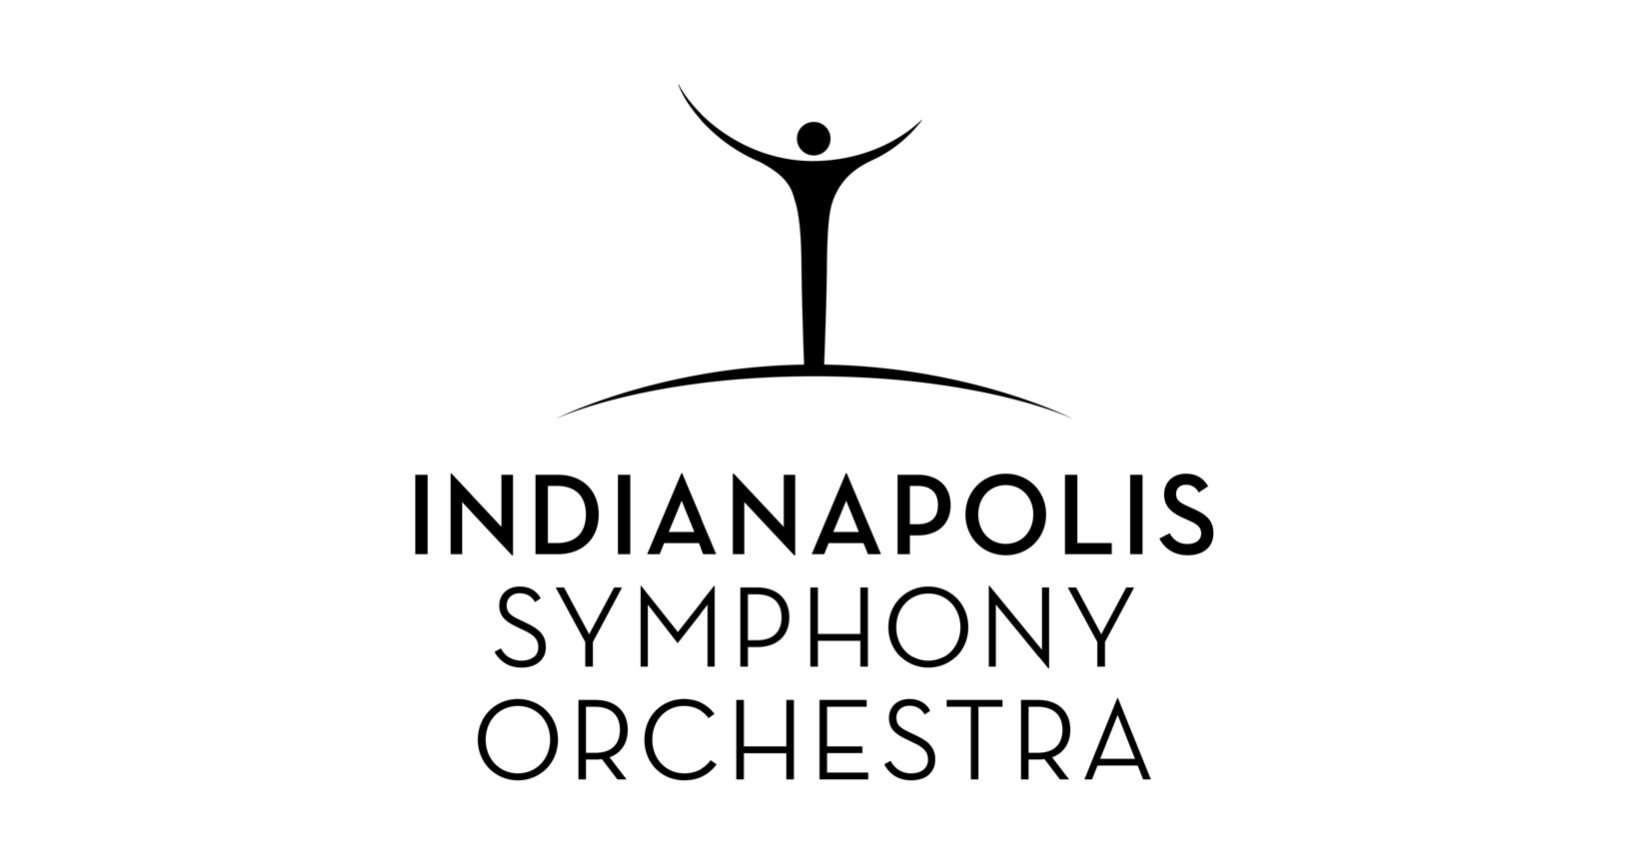 indianapolis-symphony-orchestra